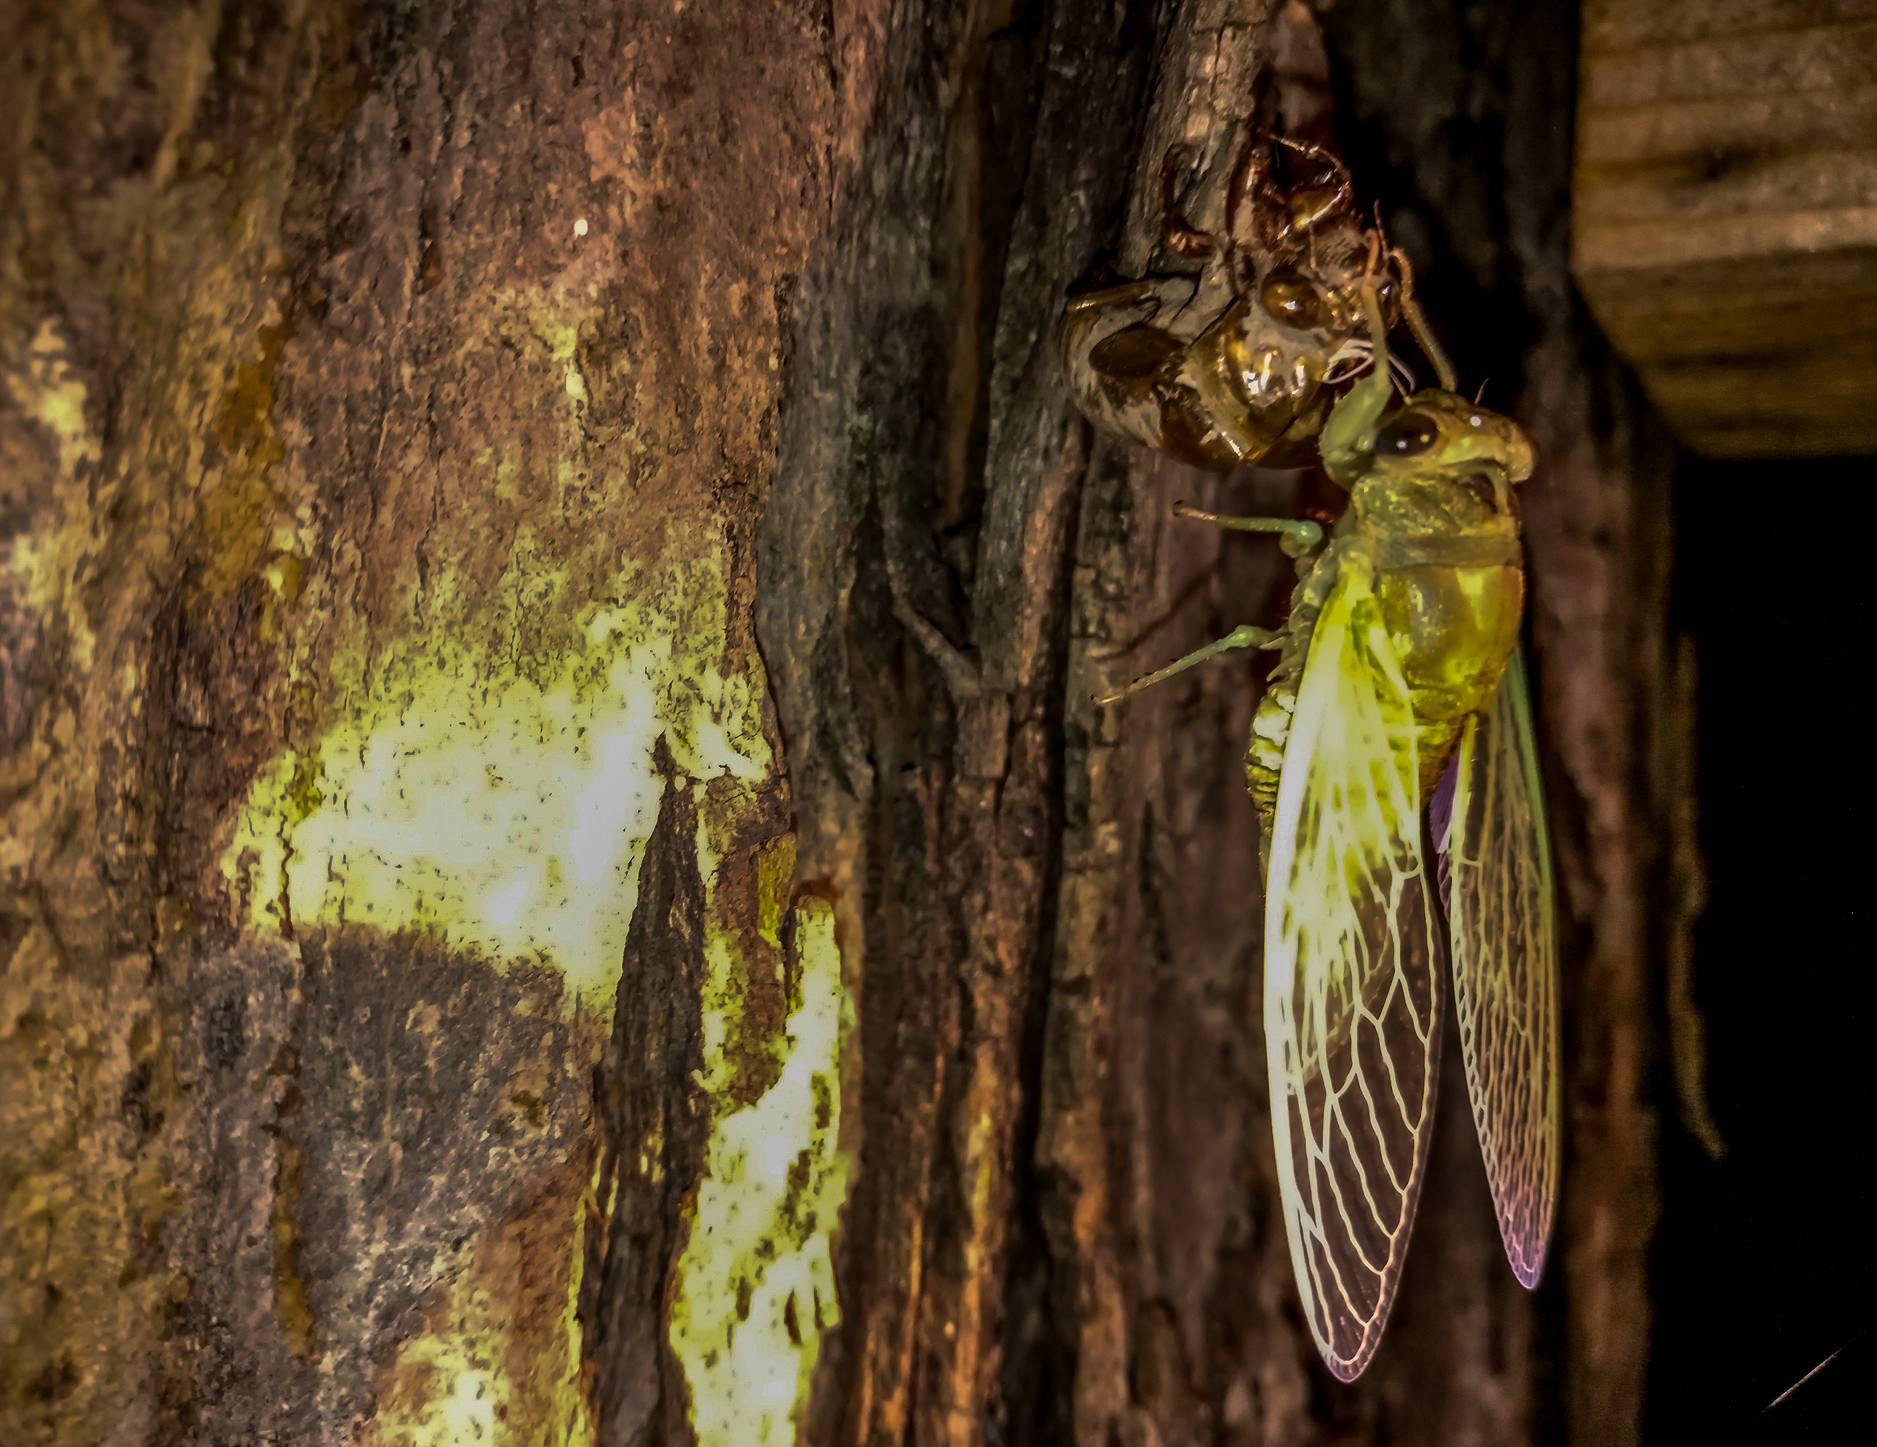 Cicadas emerging from their exoskeleton on a tree in Hoffman Estates.